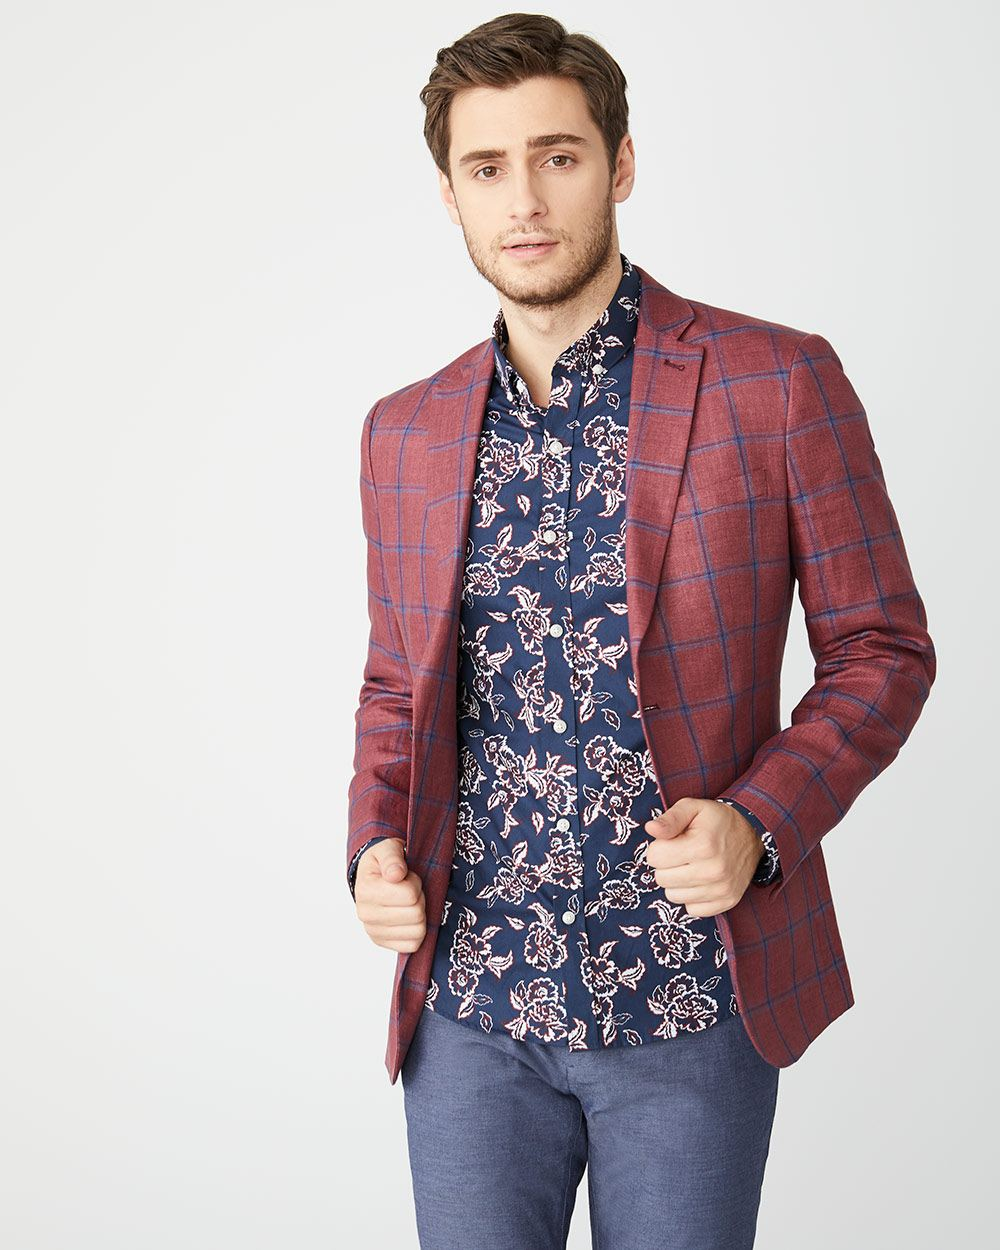 Slim Fit bold floral Shirt